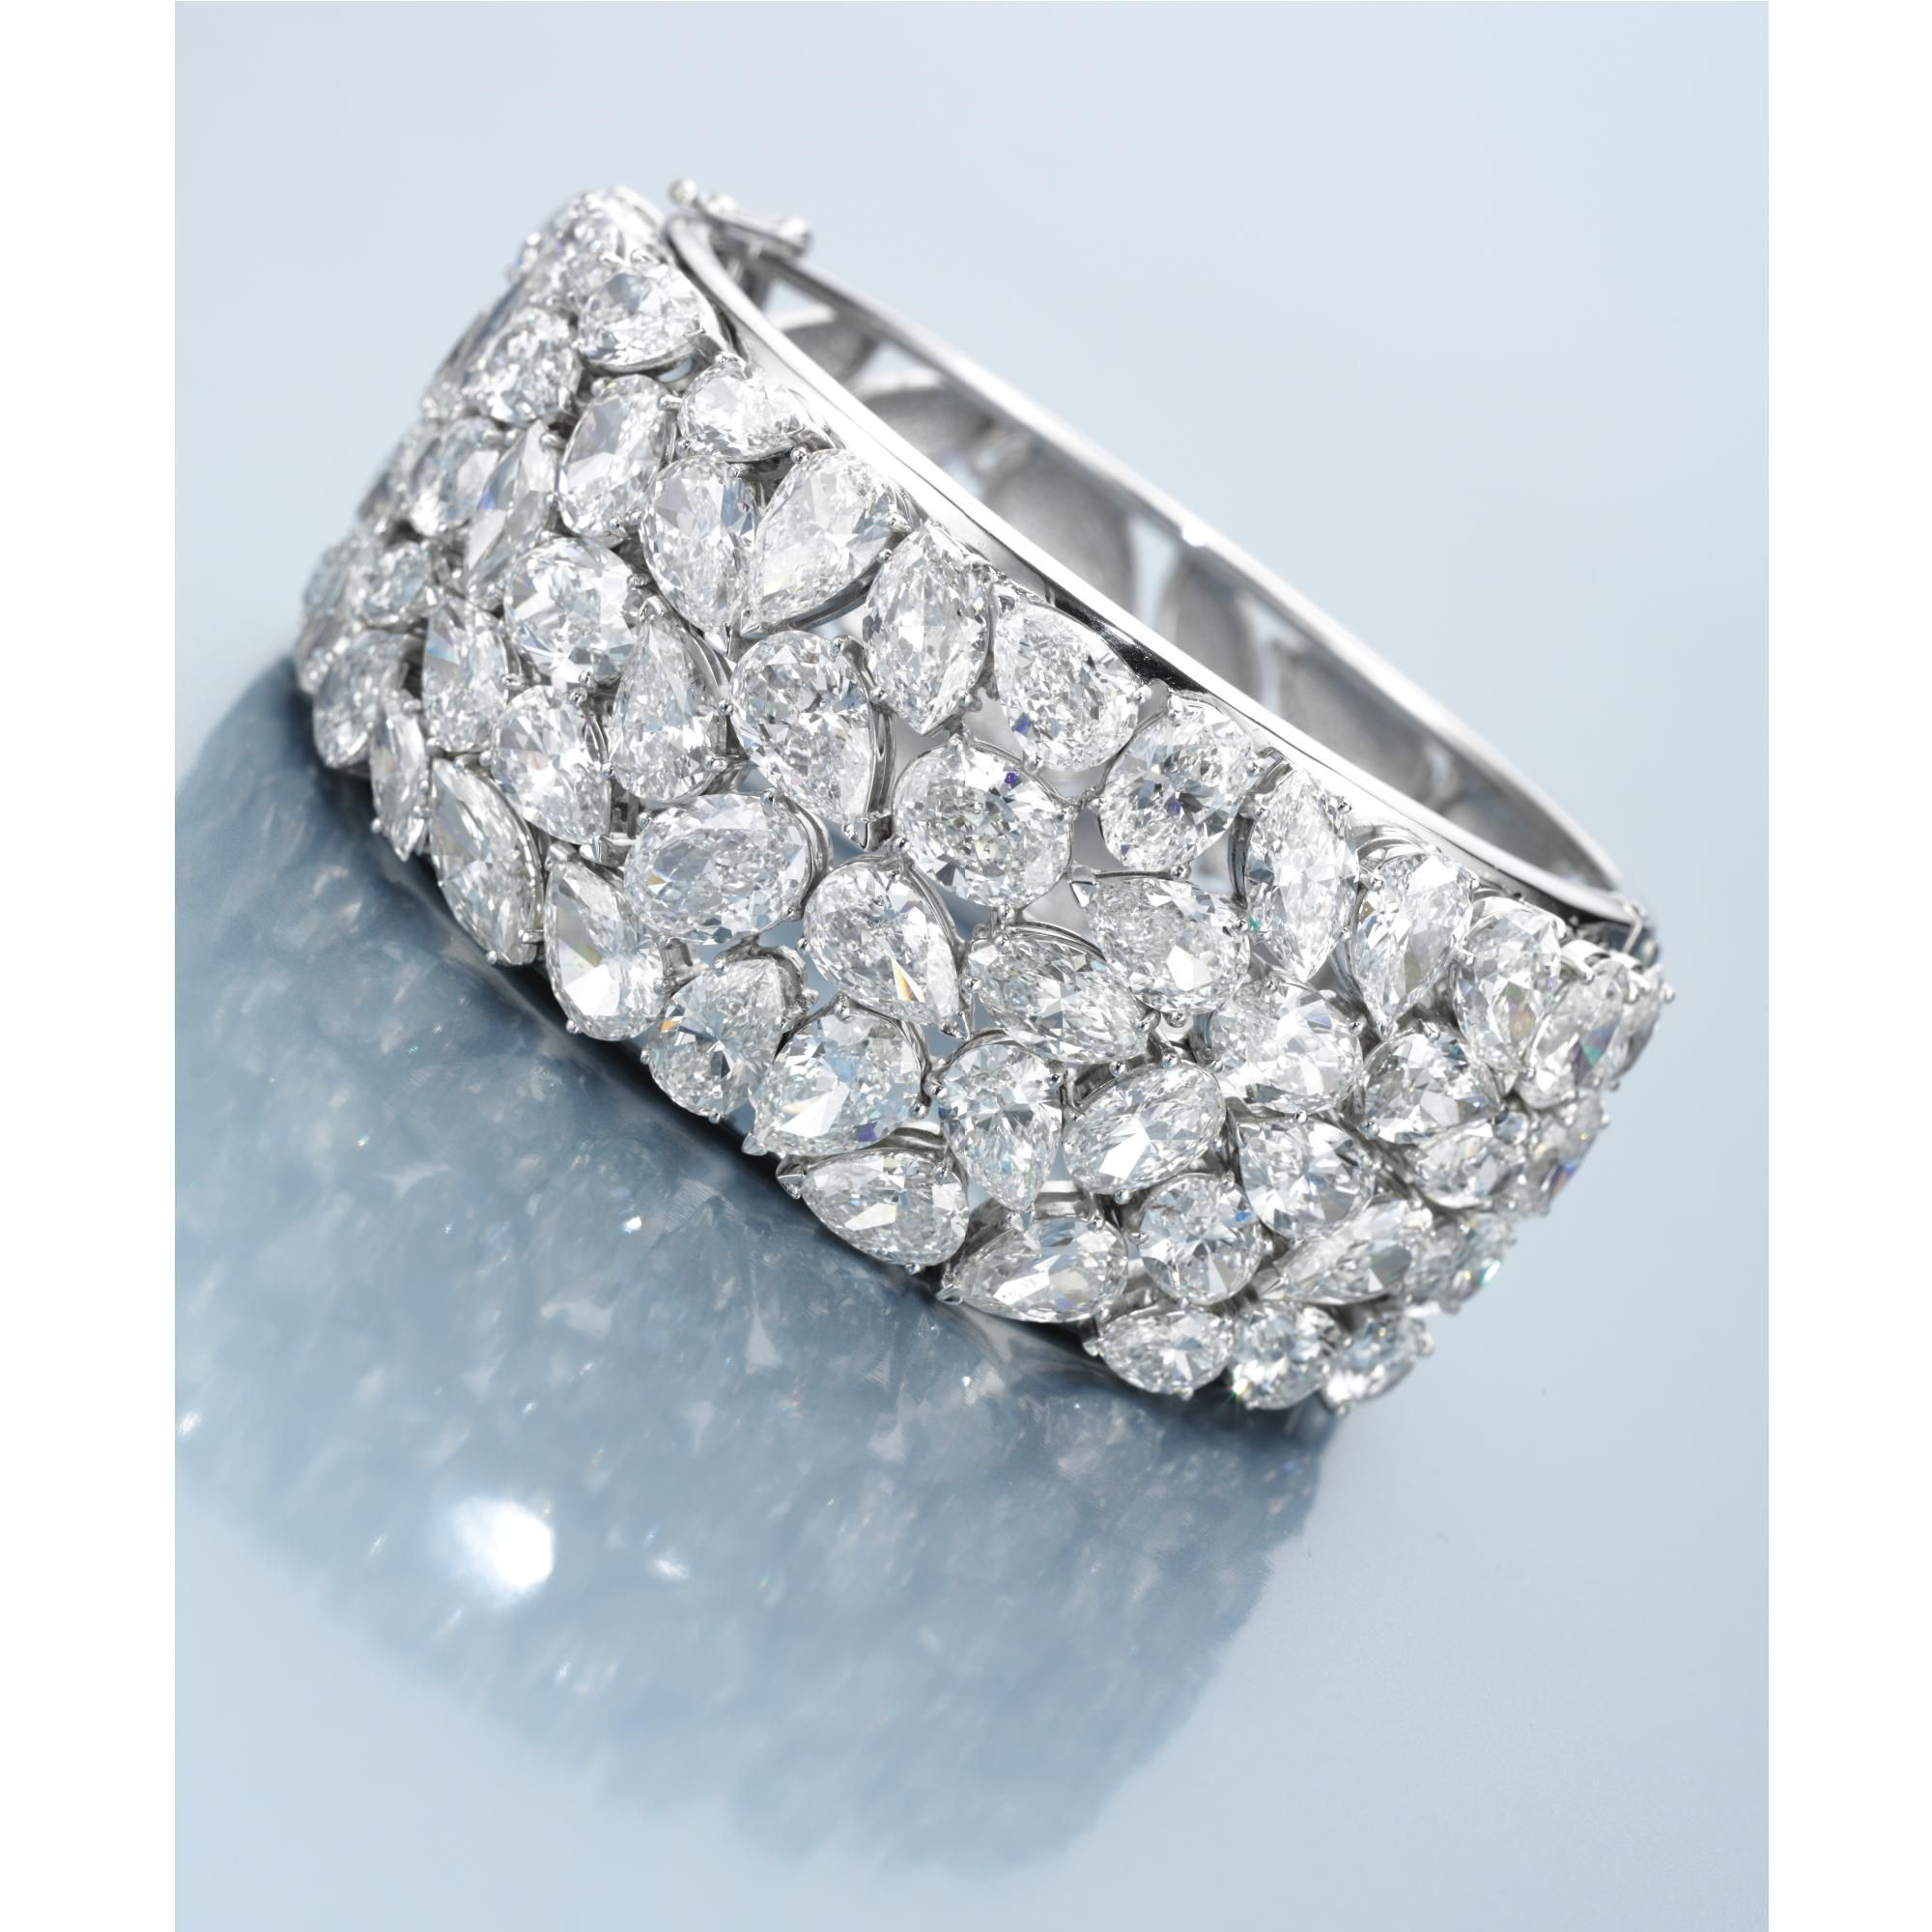 White gold diamond bangle that can be custom made just for you